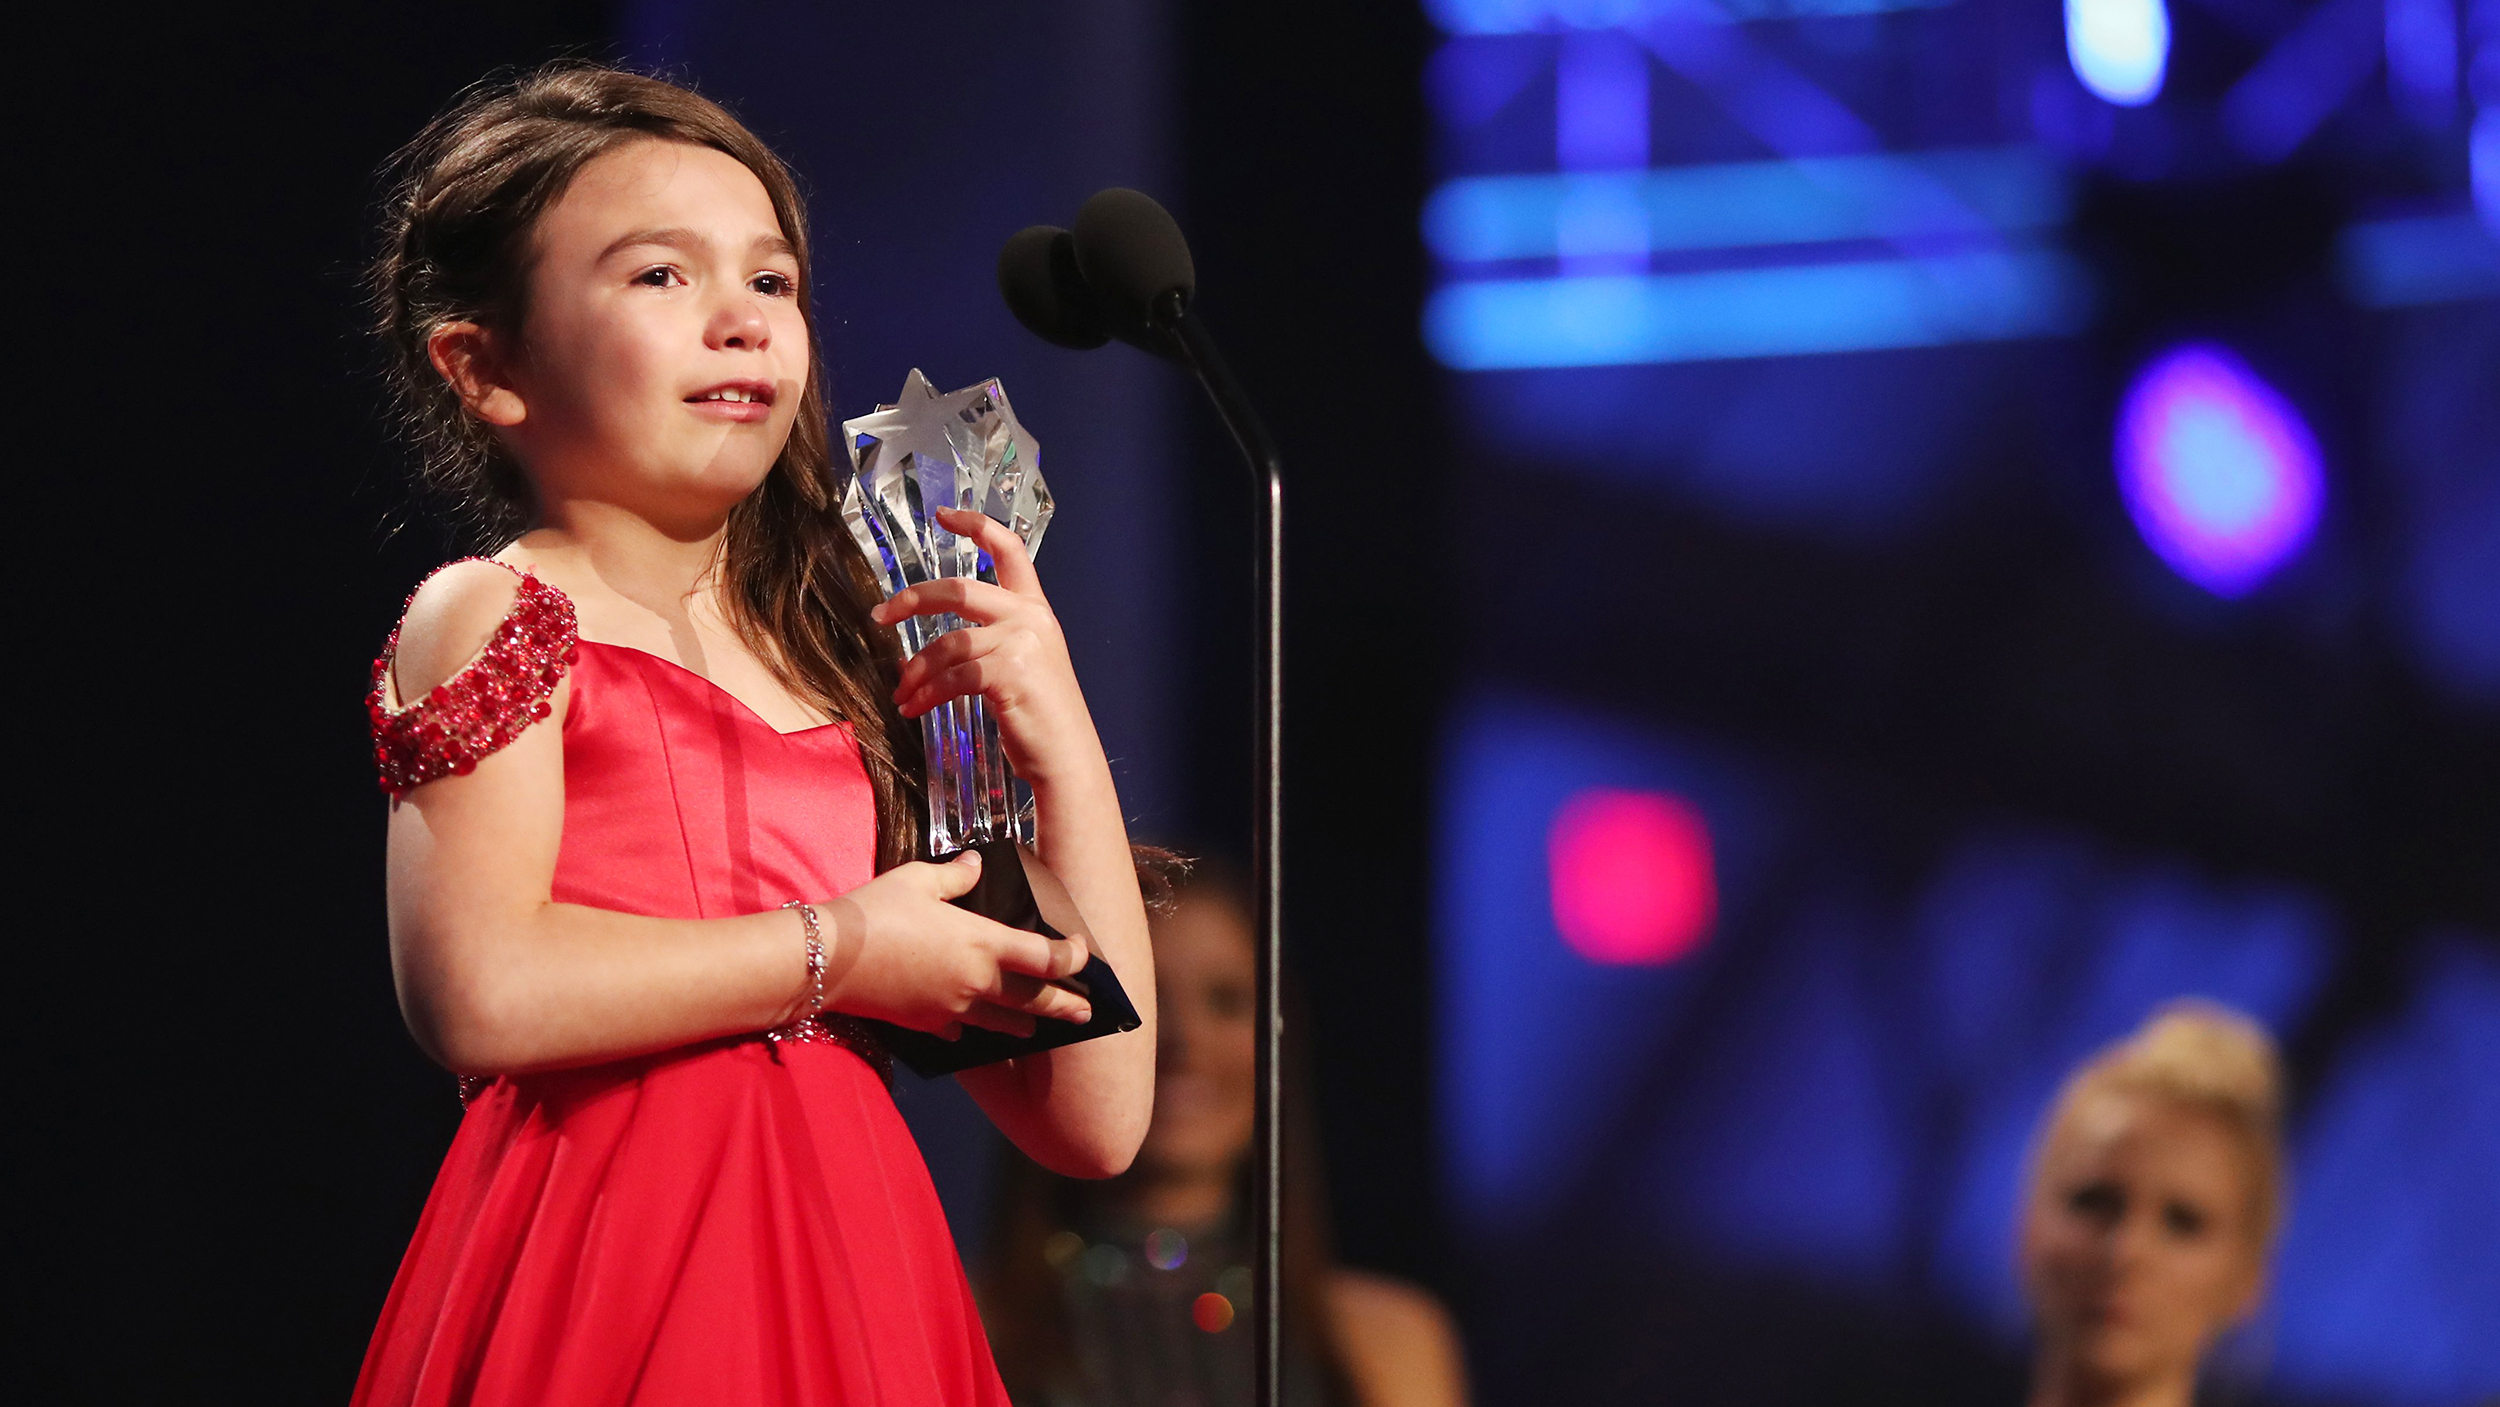 This 7-year-old's acceptance speech will make you cry ... and laugh and smile